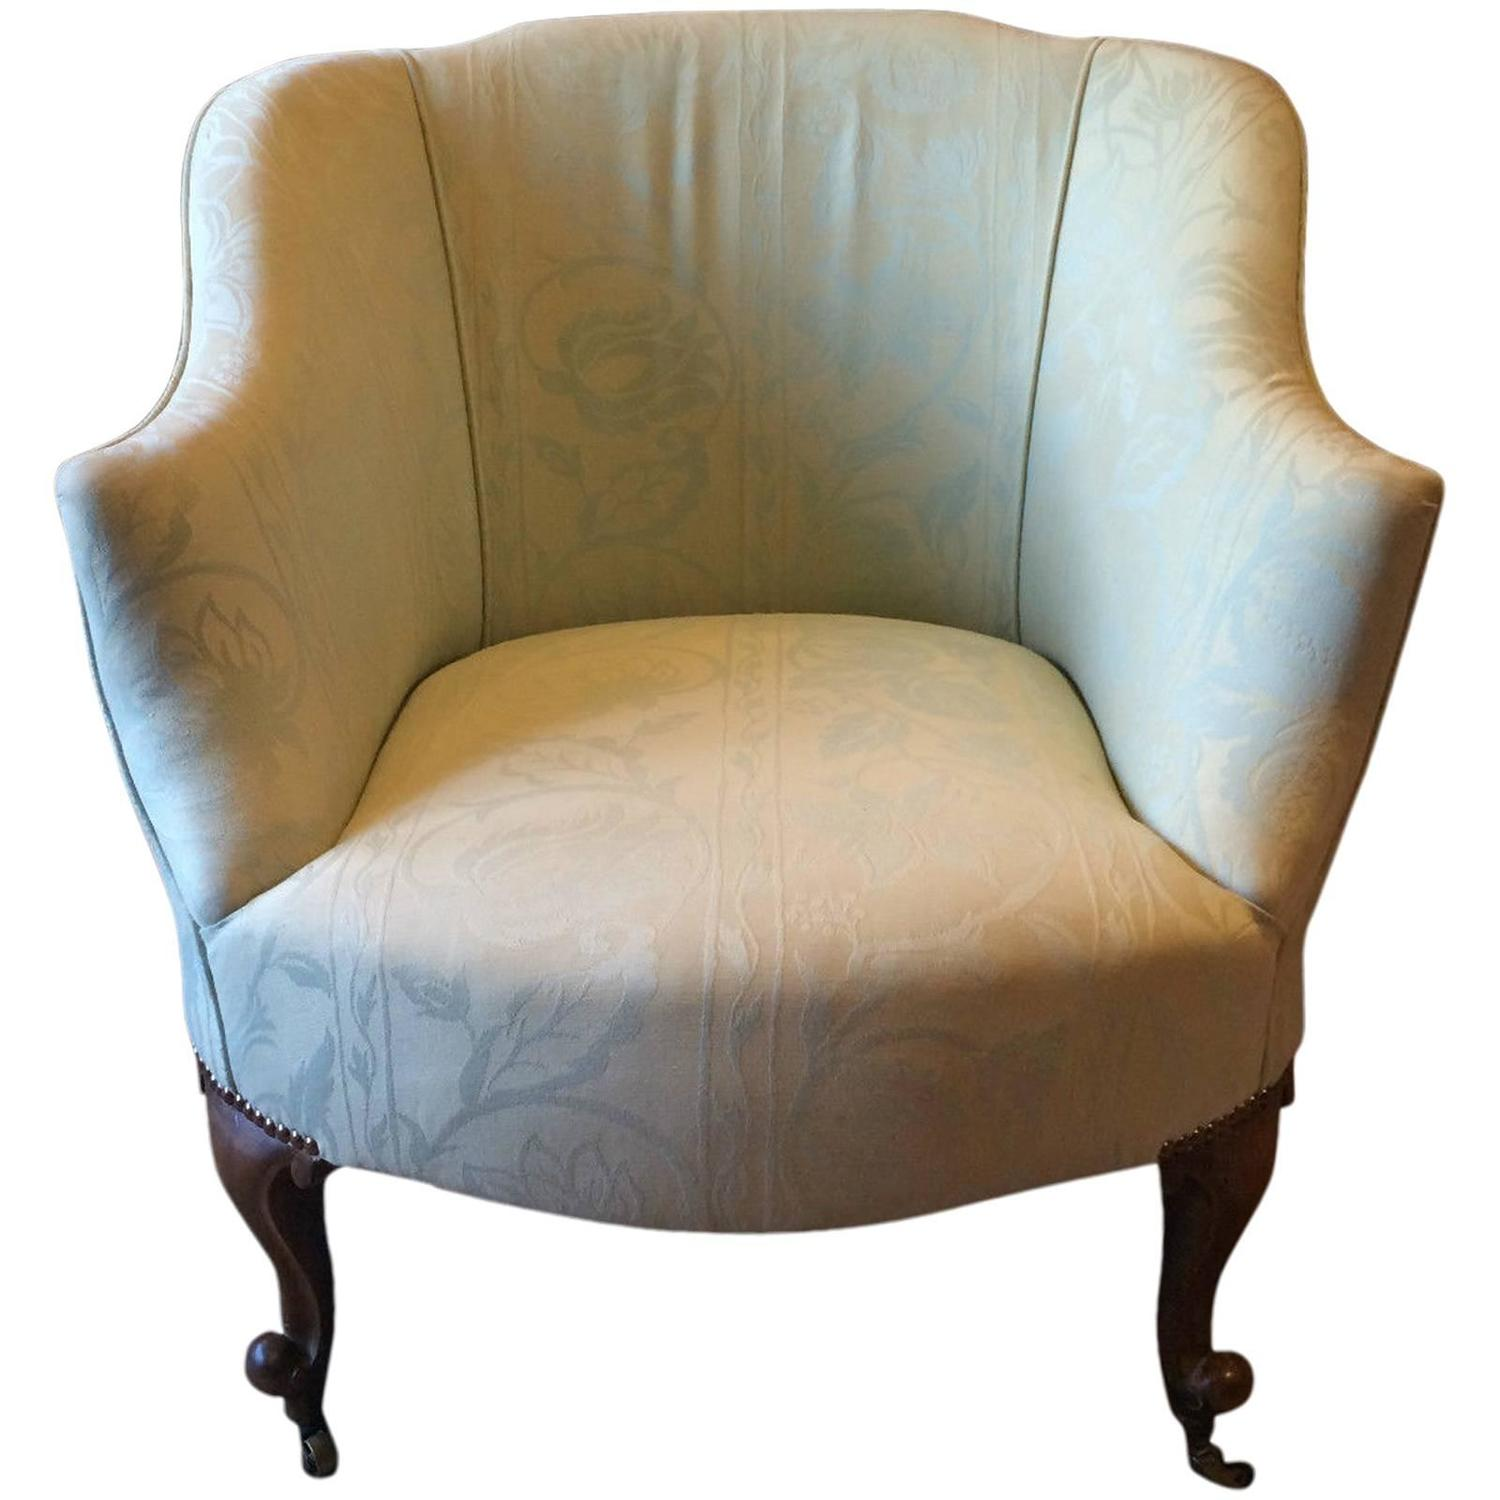 Antique Edwardian Tub Chair Armchair Early 20th Century Club Casters at  1stdibs - Antique Edwardian Tub Chair Armchair Early 20th Century Club